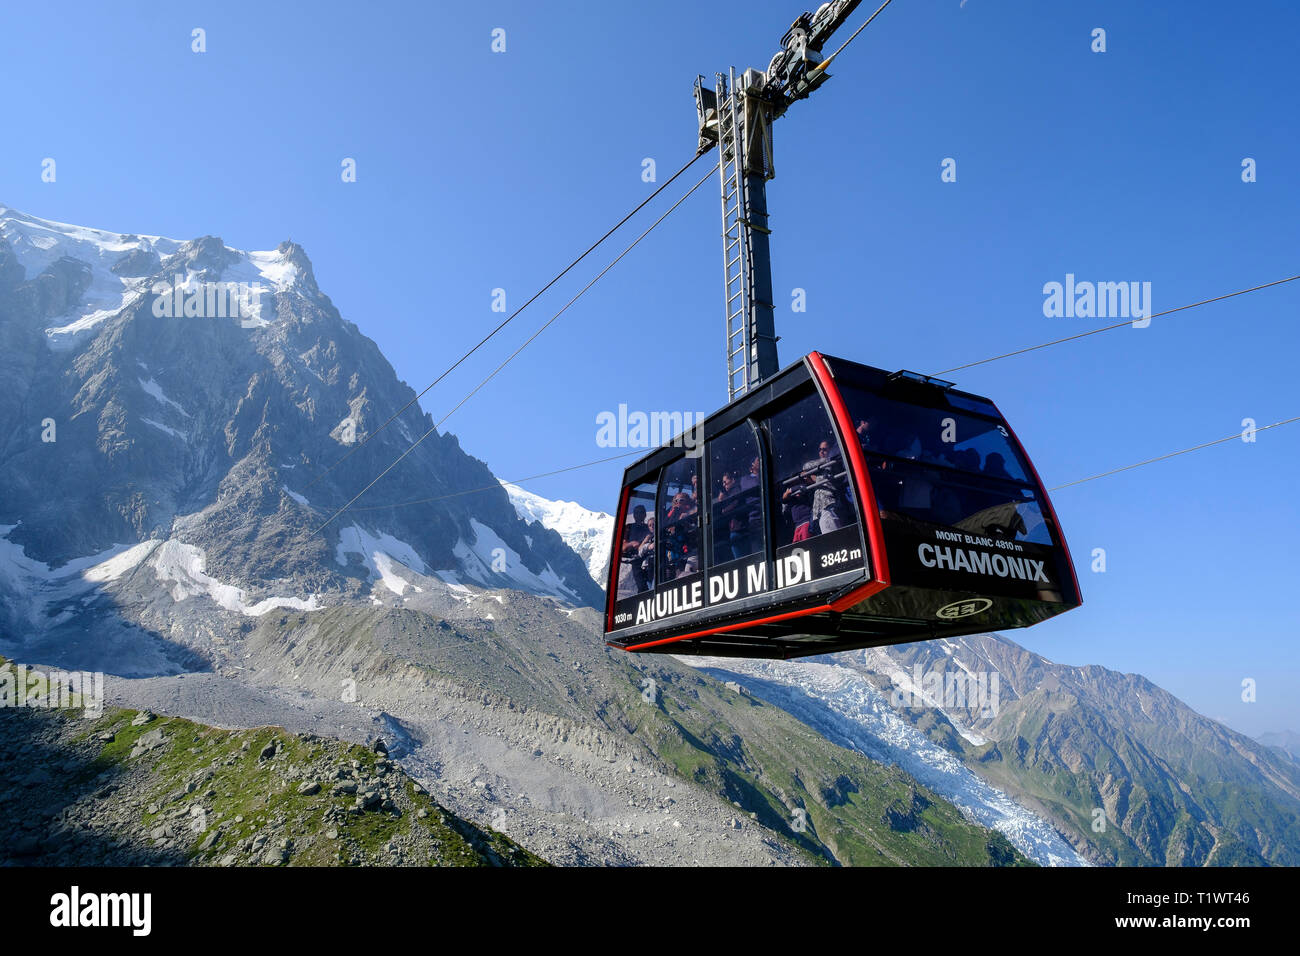 The Aiguille du Midi cable car (French Alps, western France) - Stock Image